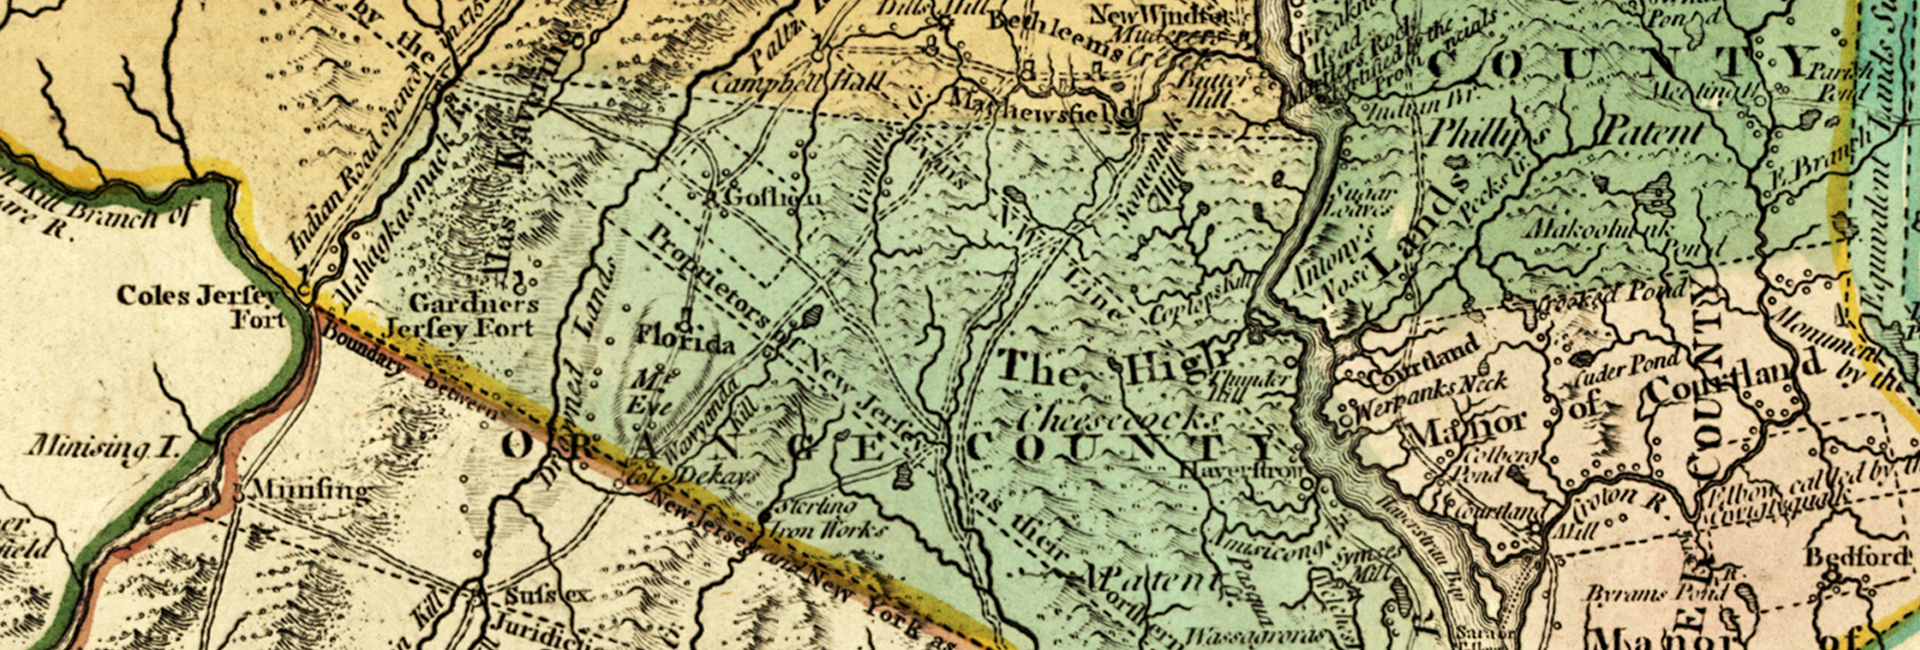 detail of 1776 map of Province of New York